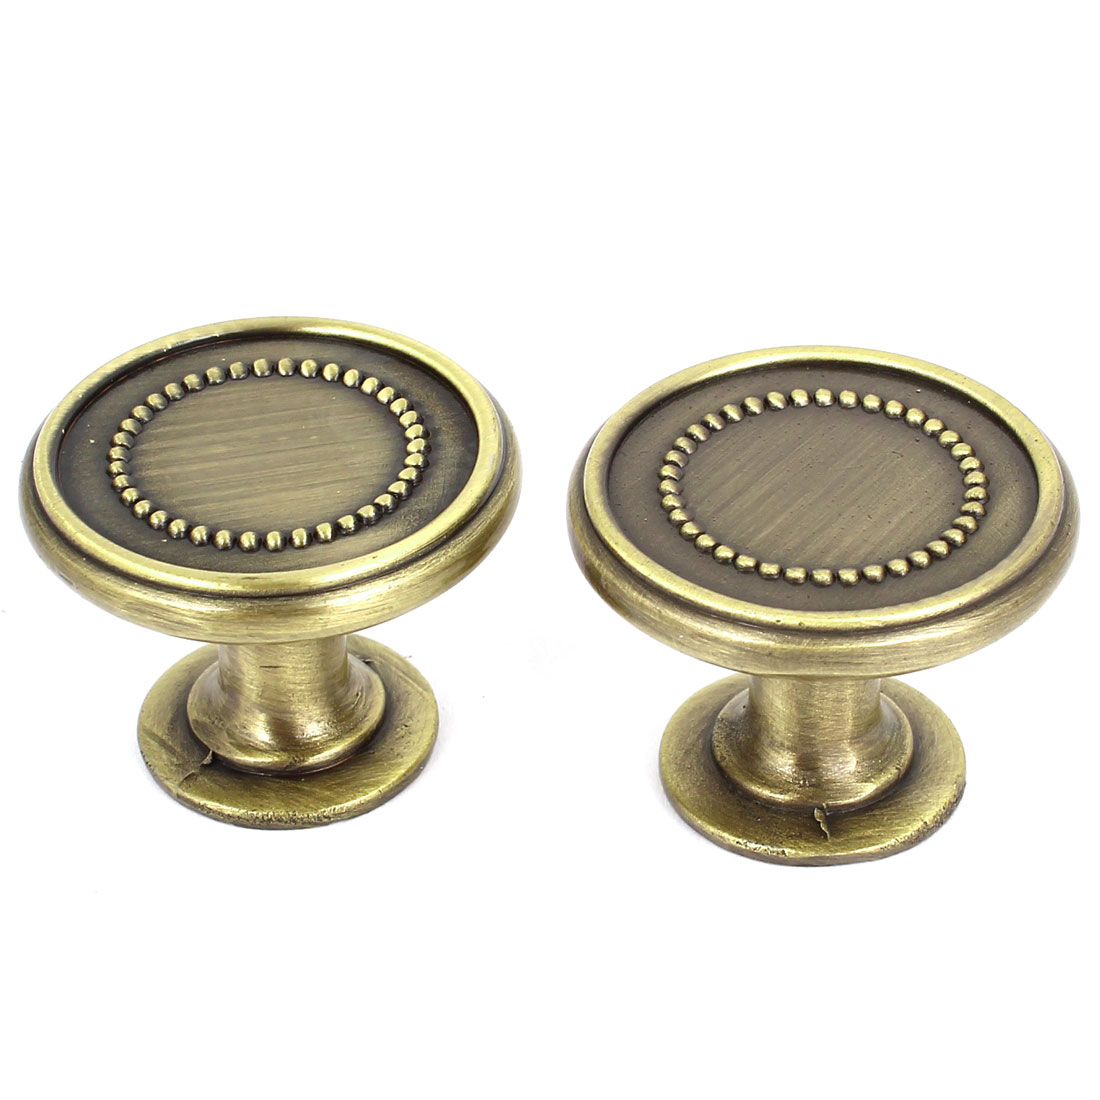 Bronze Tone Metal 30mm Round Knob Pull 2 Pcs for Cupboard Drawer Door